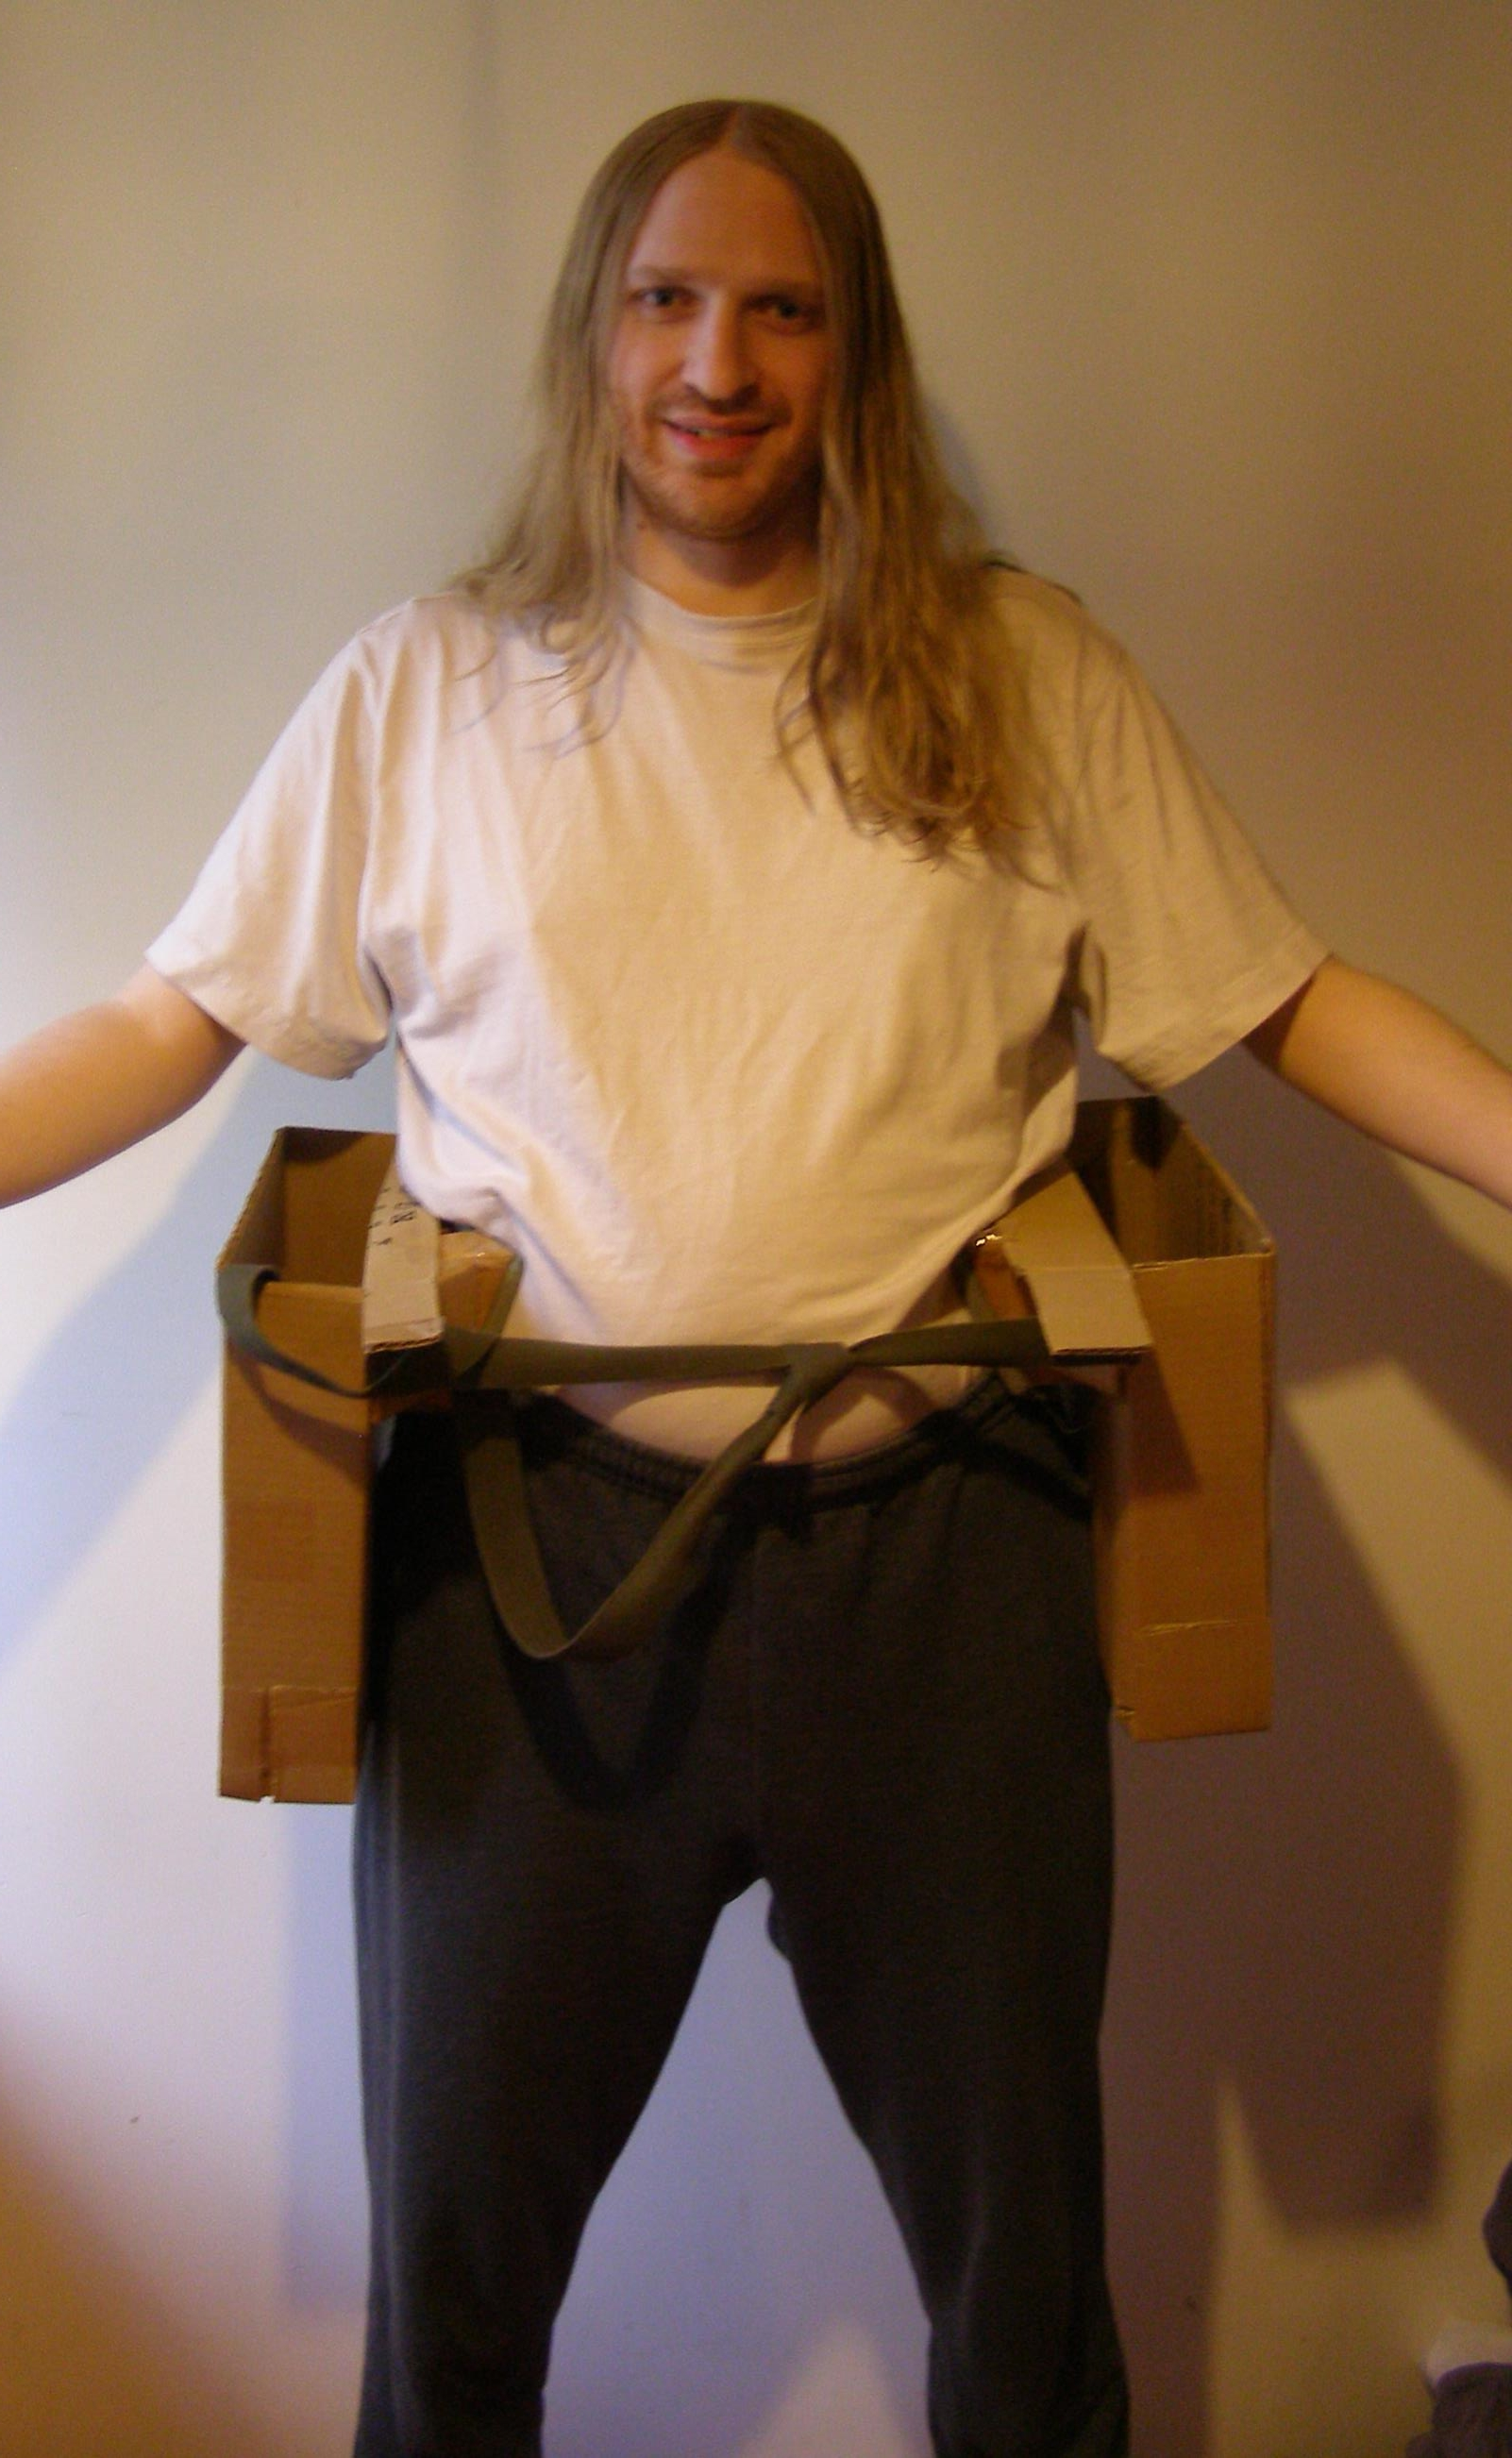 [Photo: Me, wearing Saddlebags 2.1 around my hips. They are two cardboard boxes at my sides, connected by a strap.]